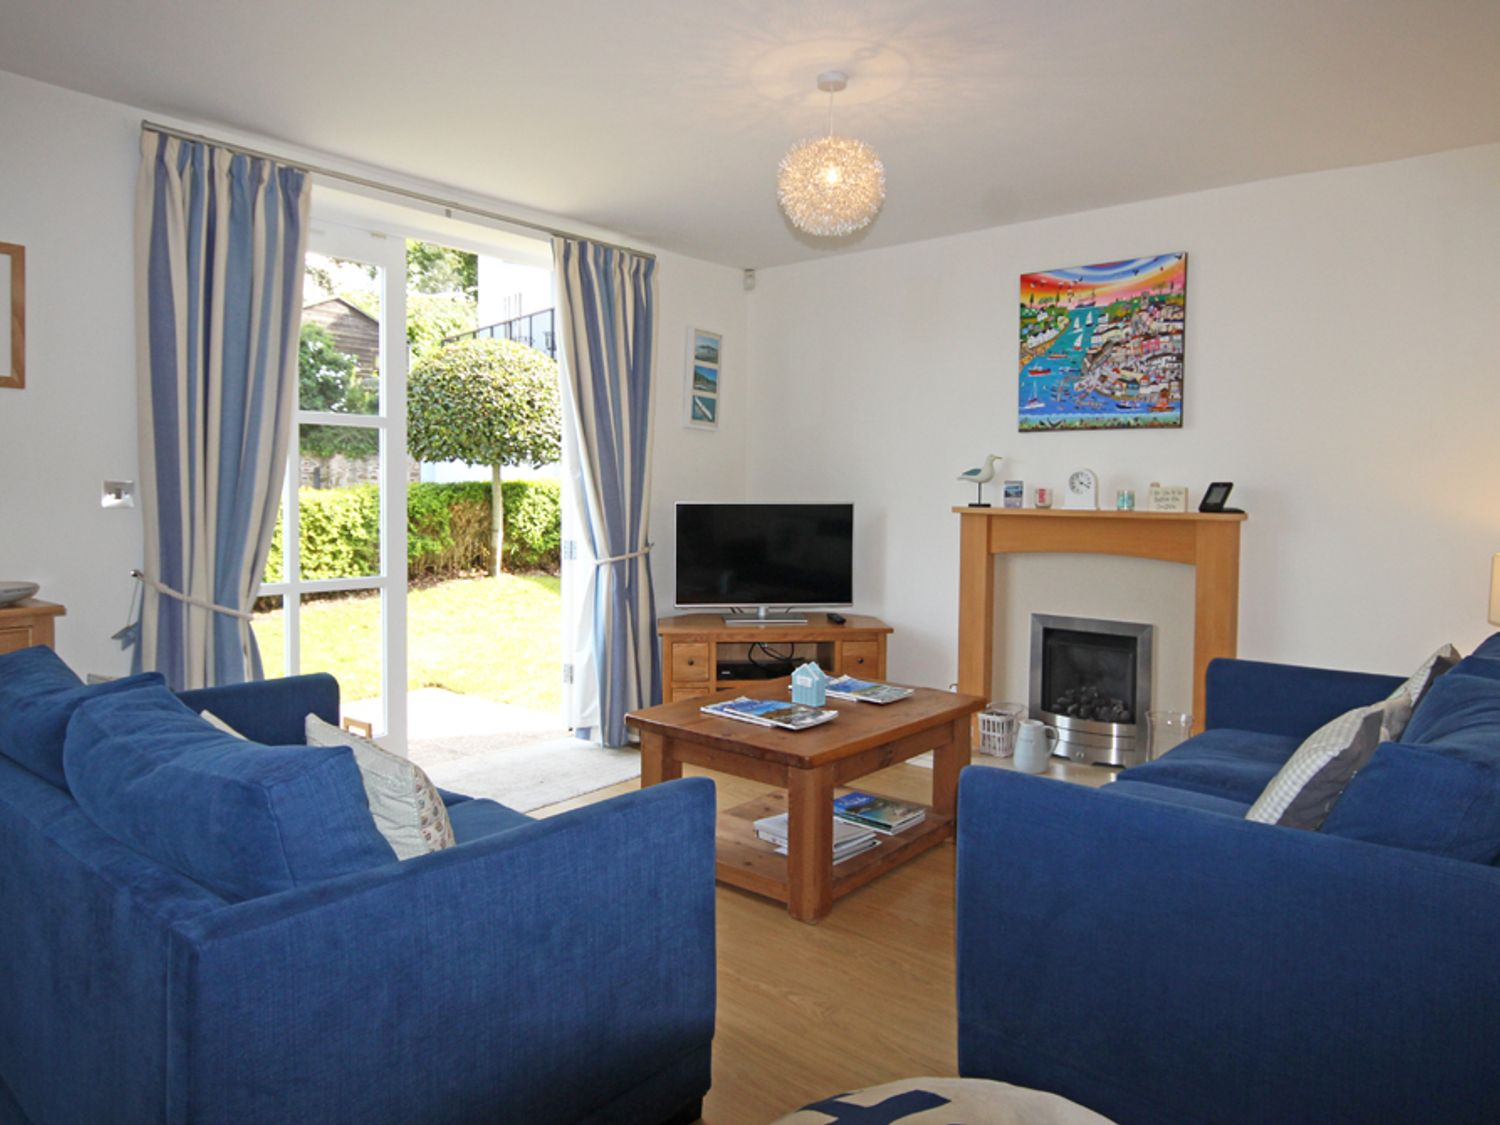 5 Combehaven - Devon - 995099 - photo 1